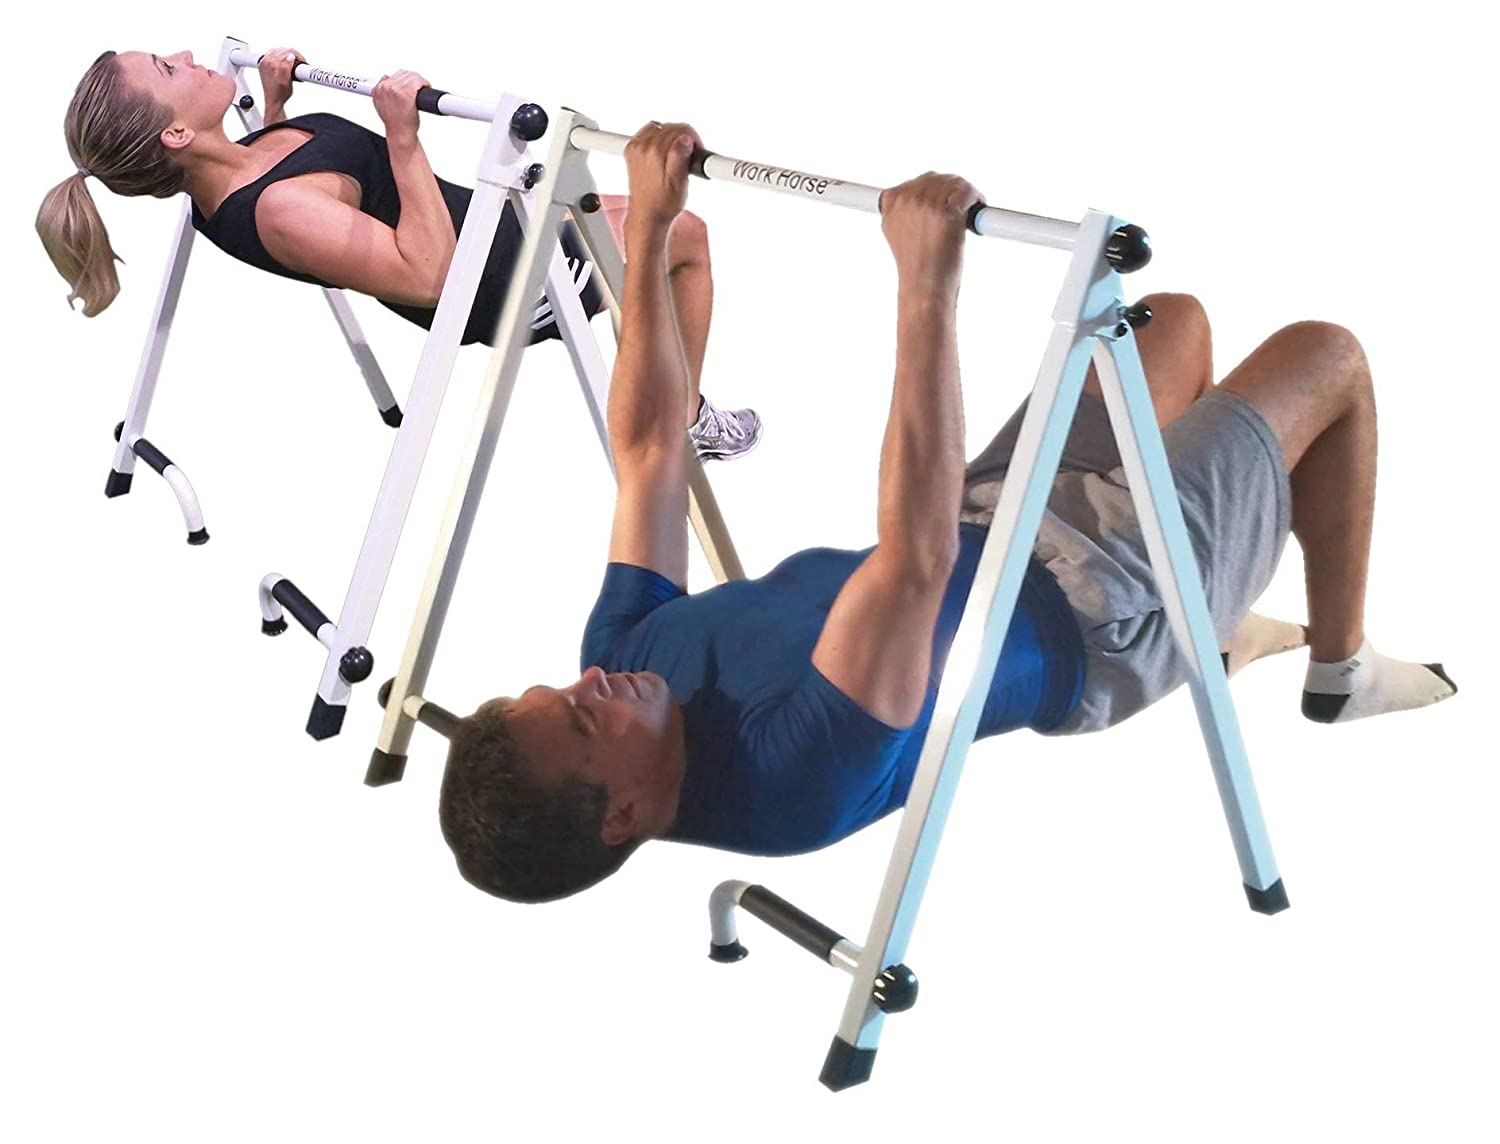 Portable Pull-up Push-up Bar – For Inverted Pull-ups